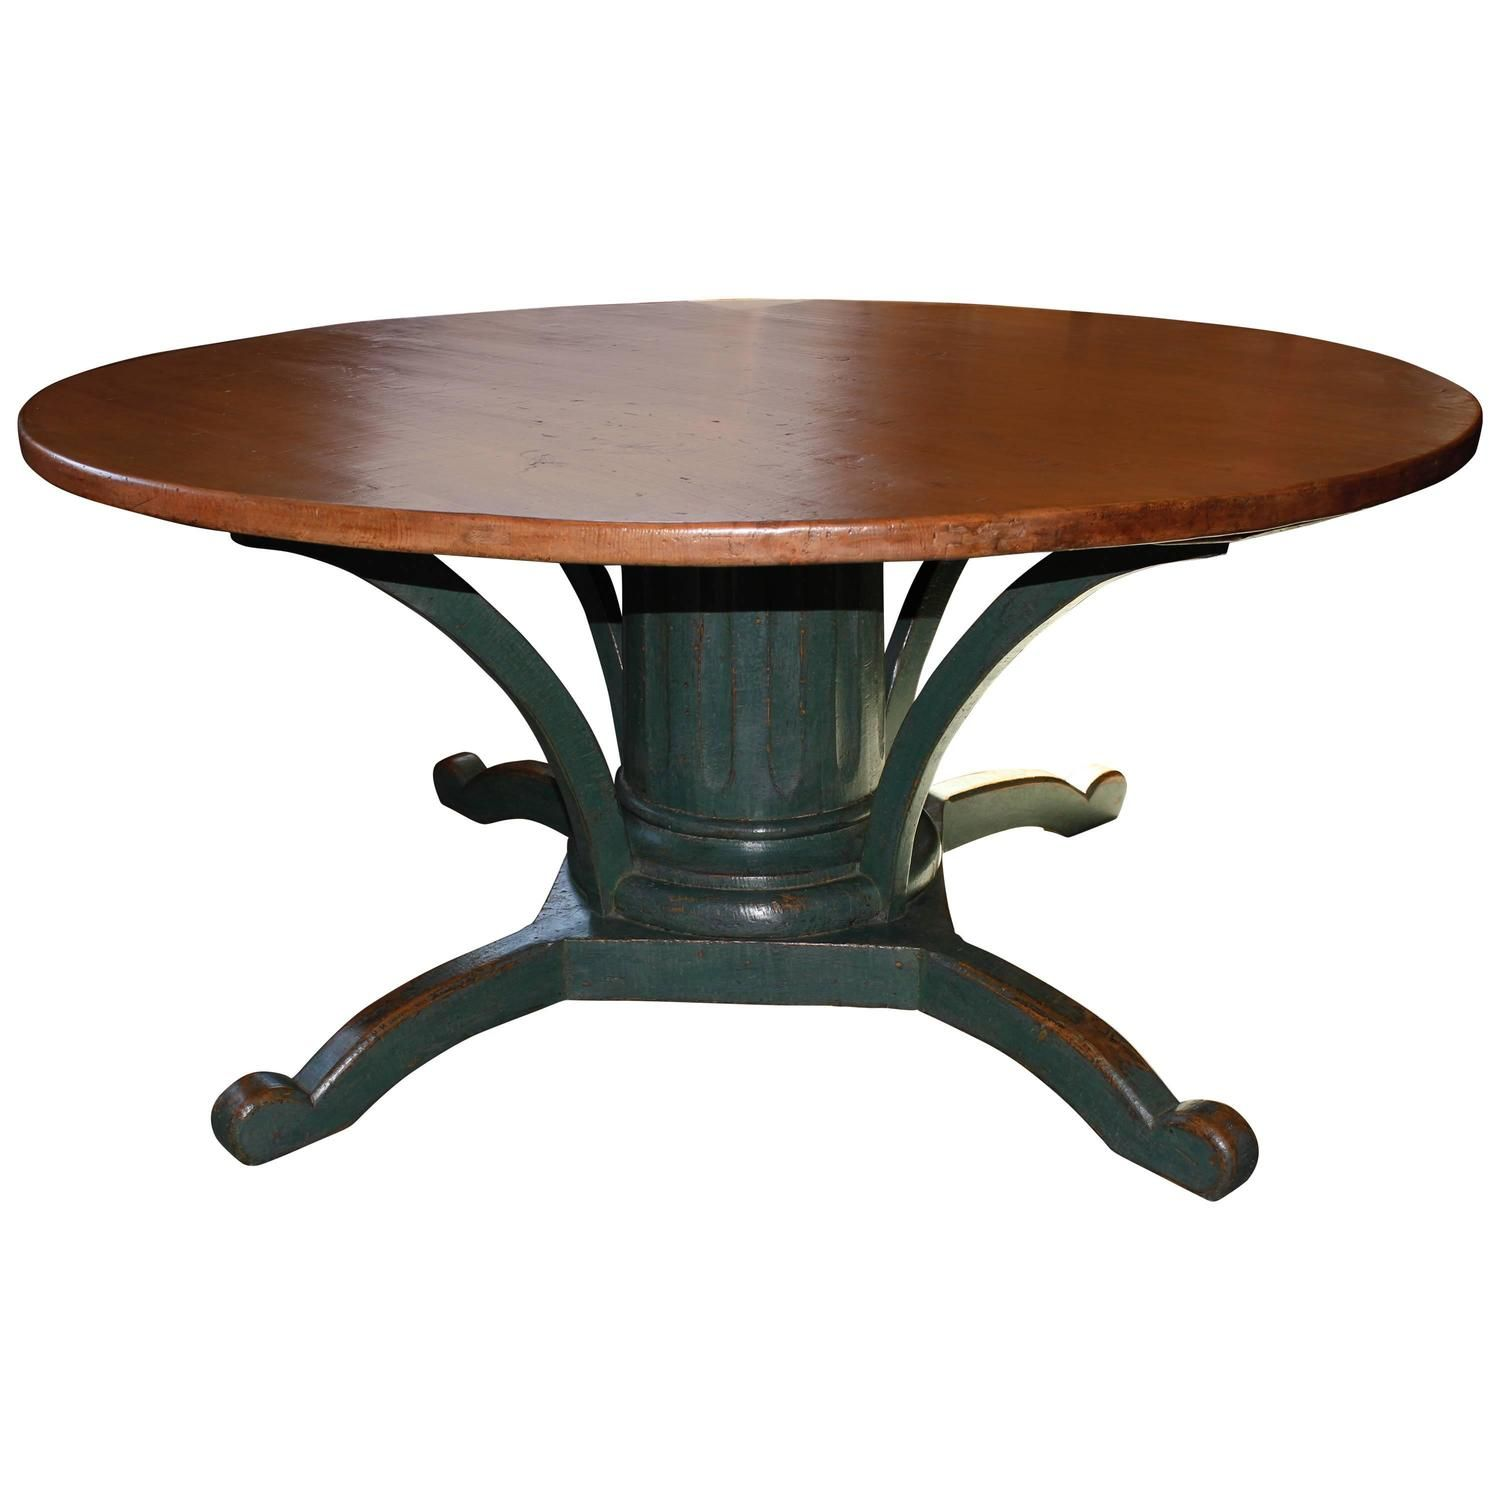 base fullxfull duty products industrial dining tube table legs il steel heavy style image pedestal factory